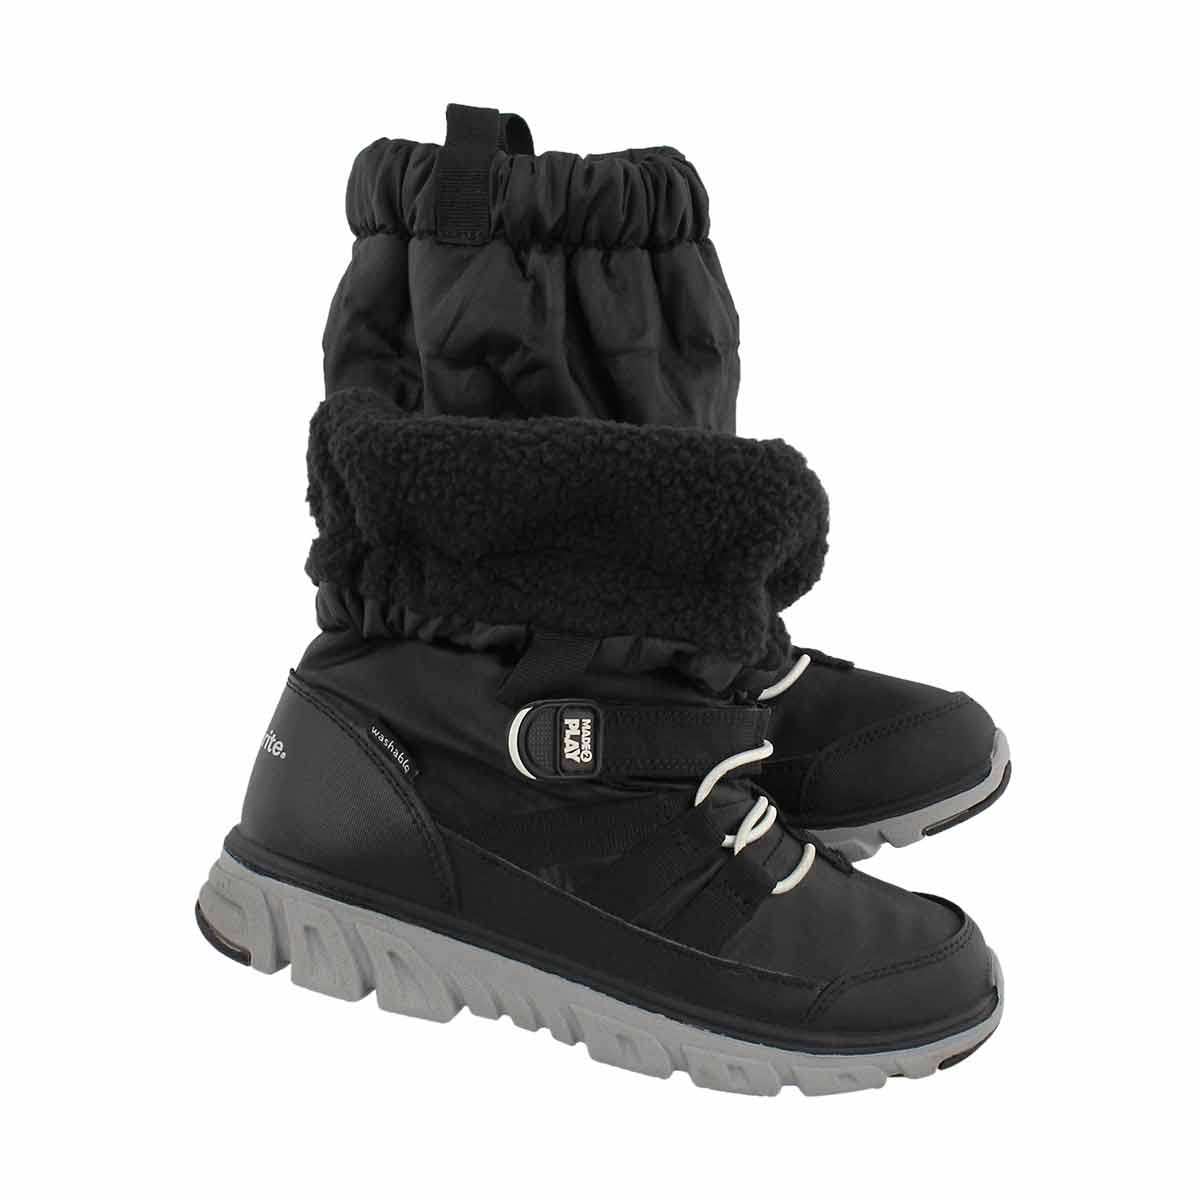 Bys M2P Sneaker Boot black winter boot